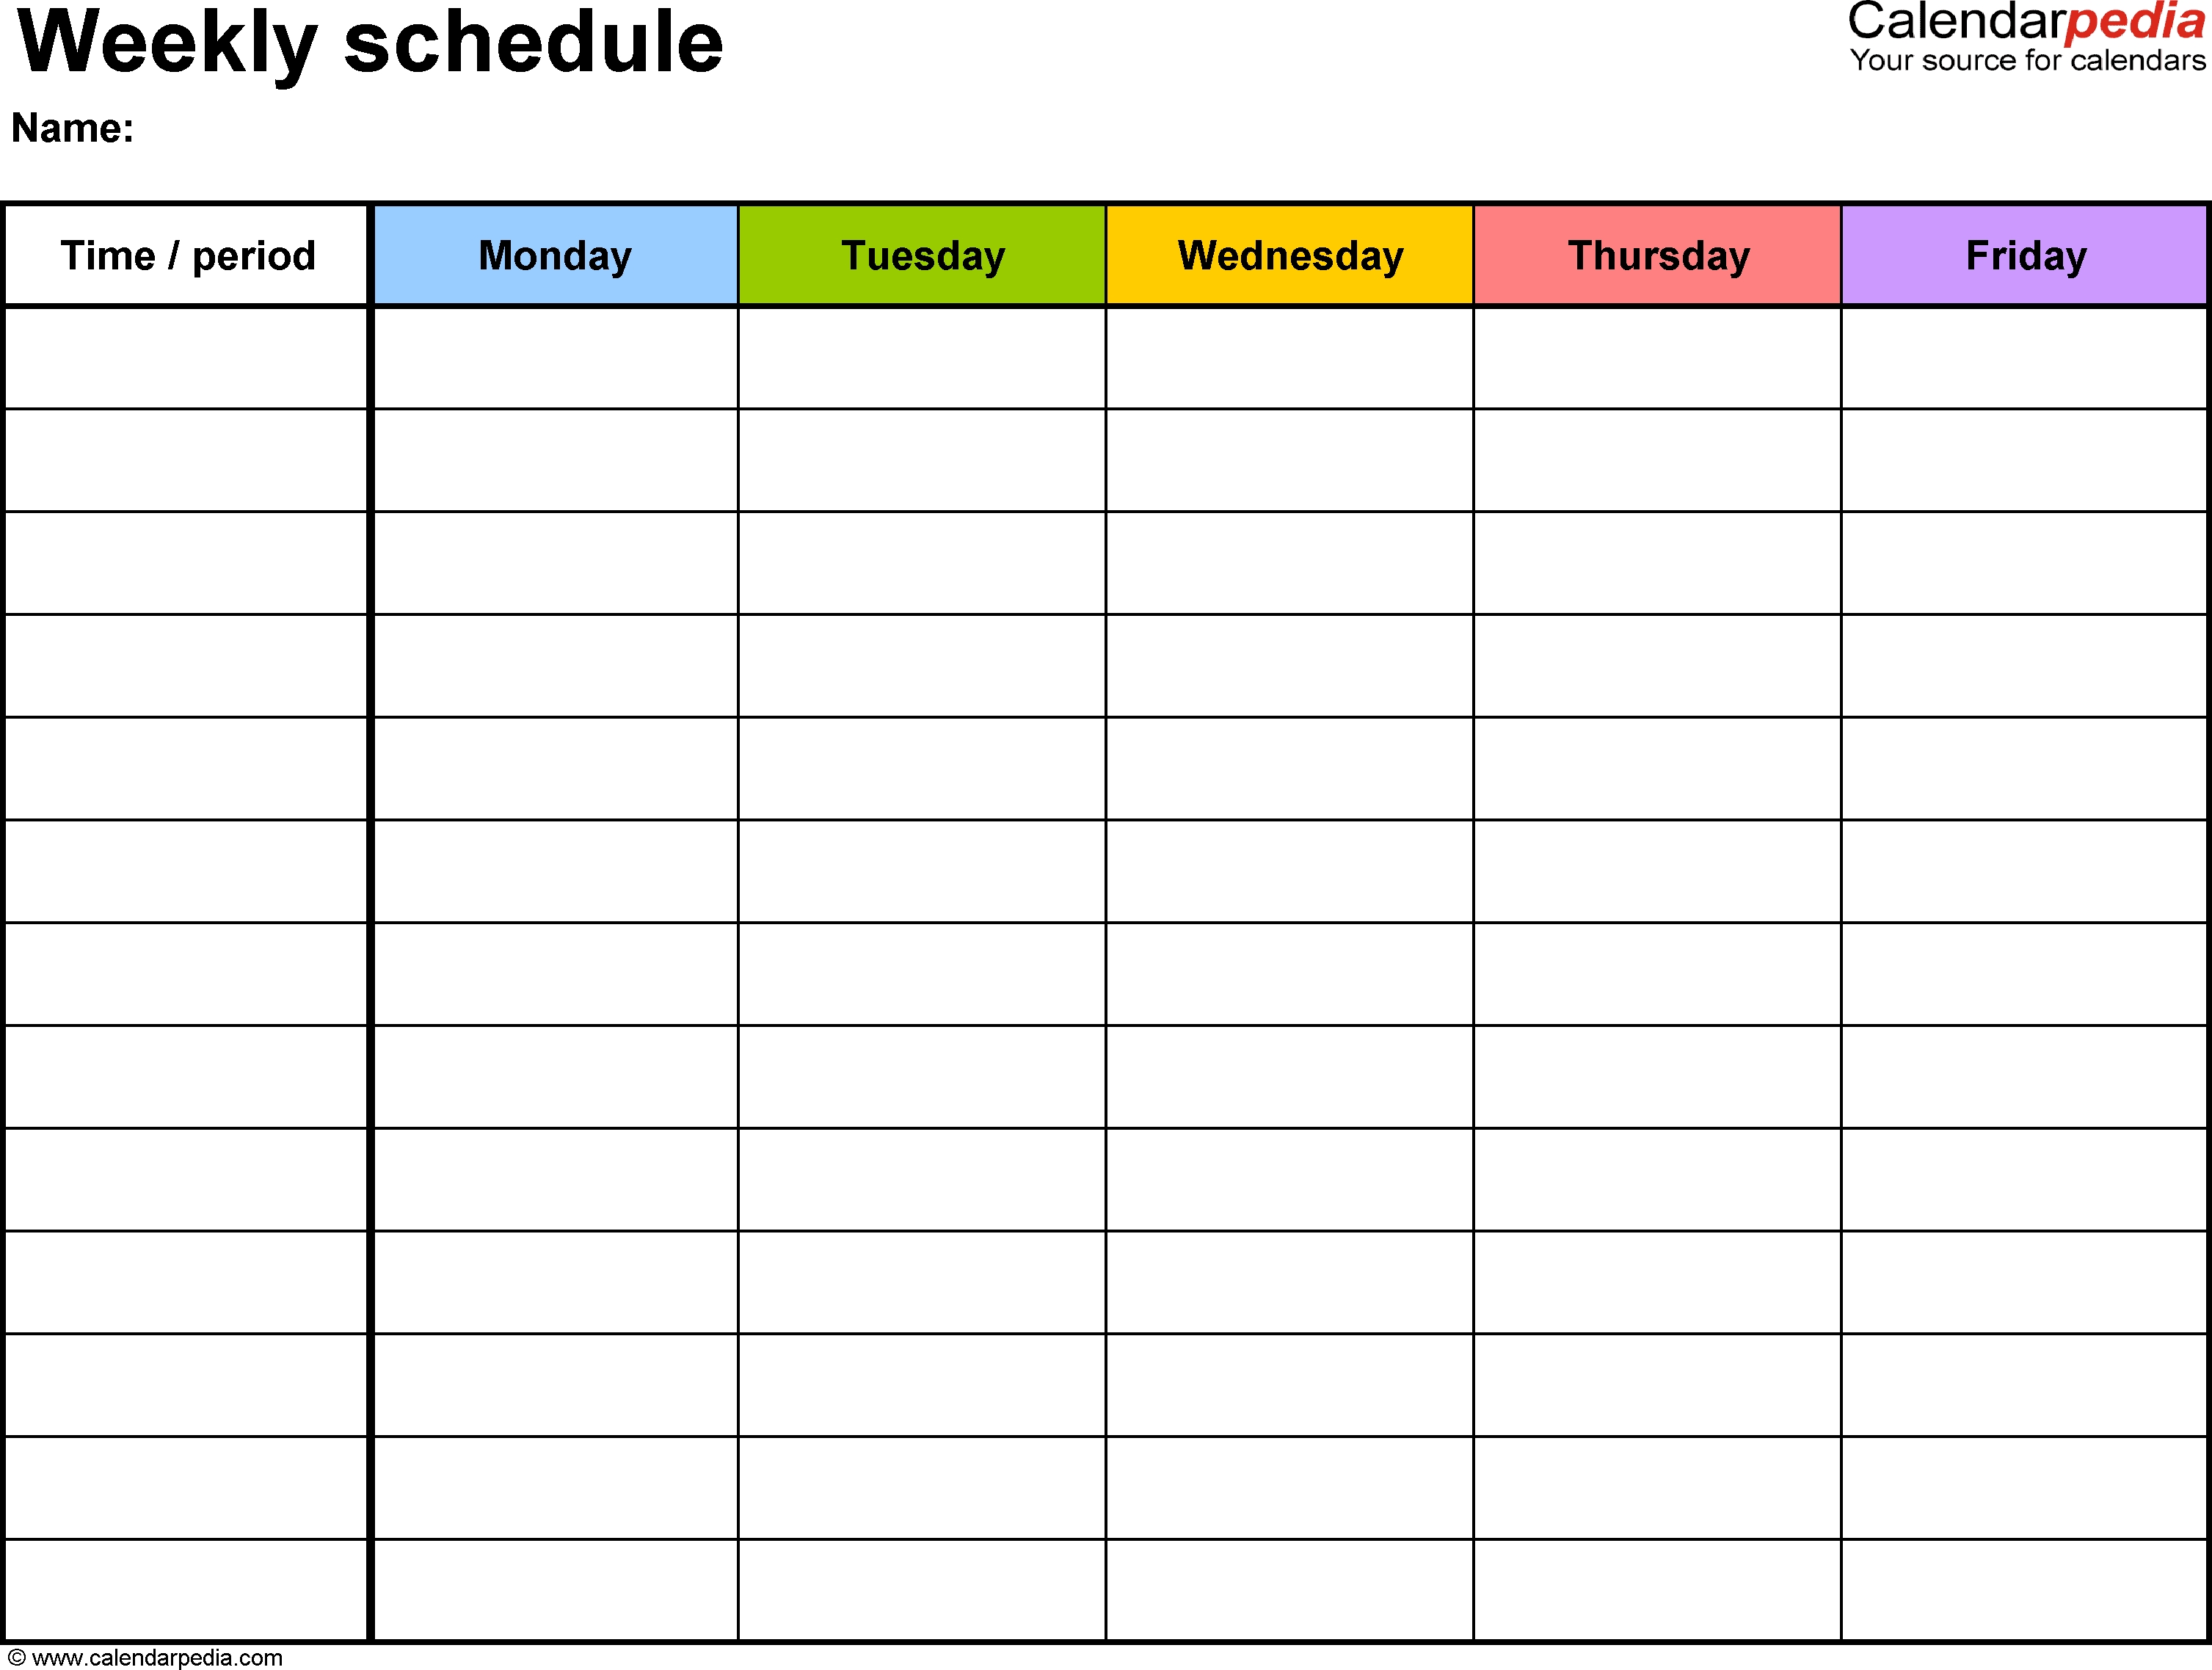 Free Weekly Schedule Templates For Excel - 18 Templates intended for Blank Chore Calendar Printable Week Day 5